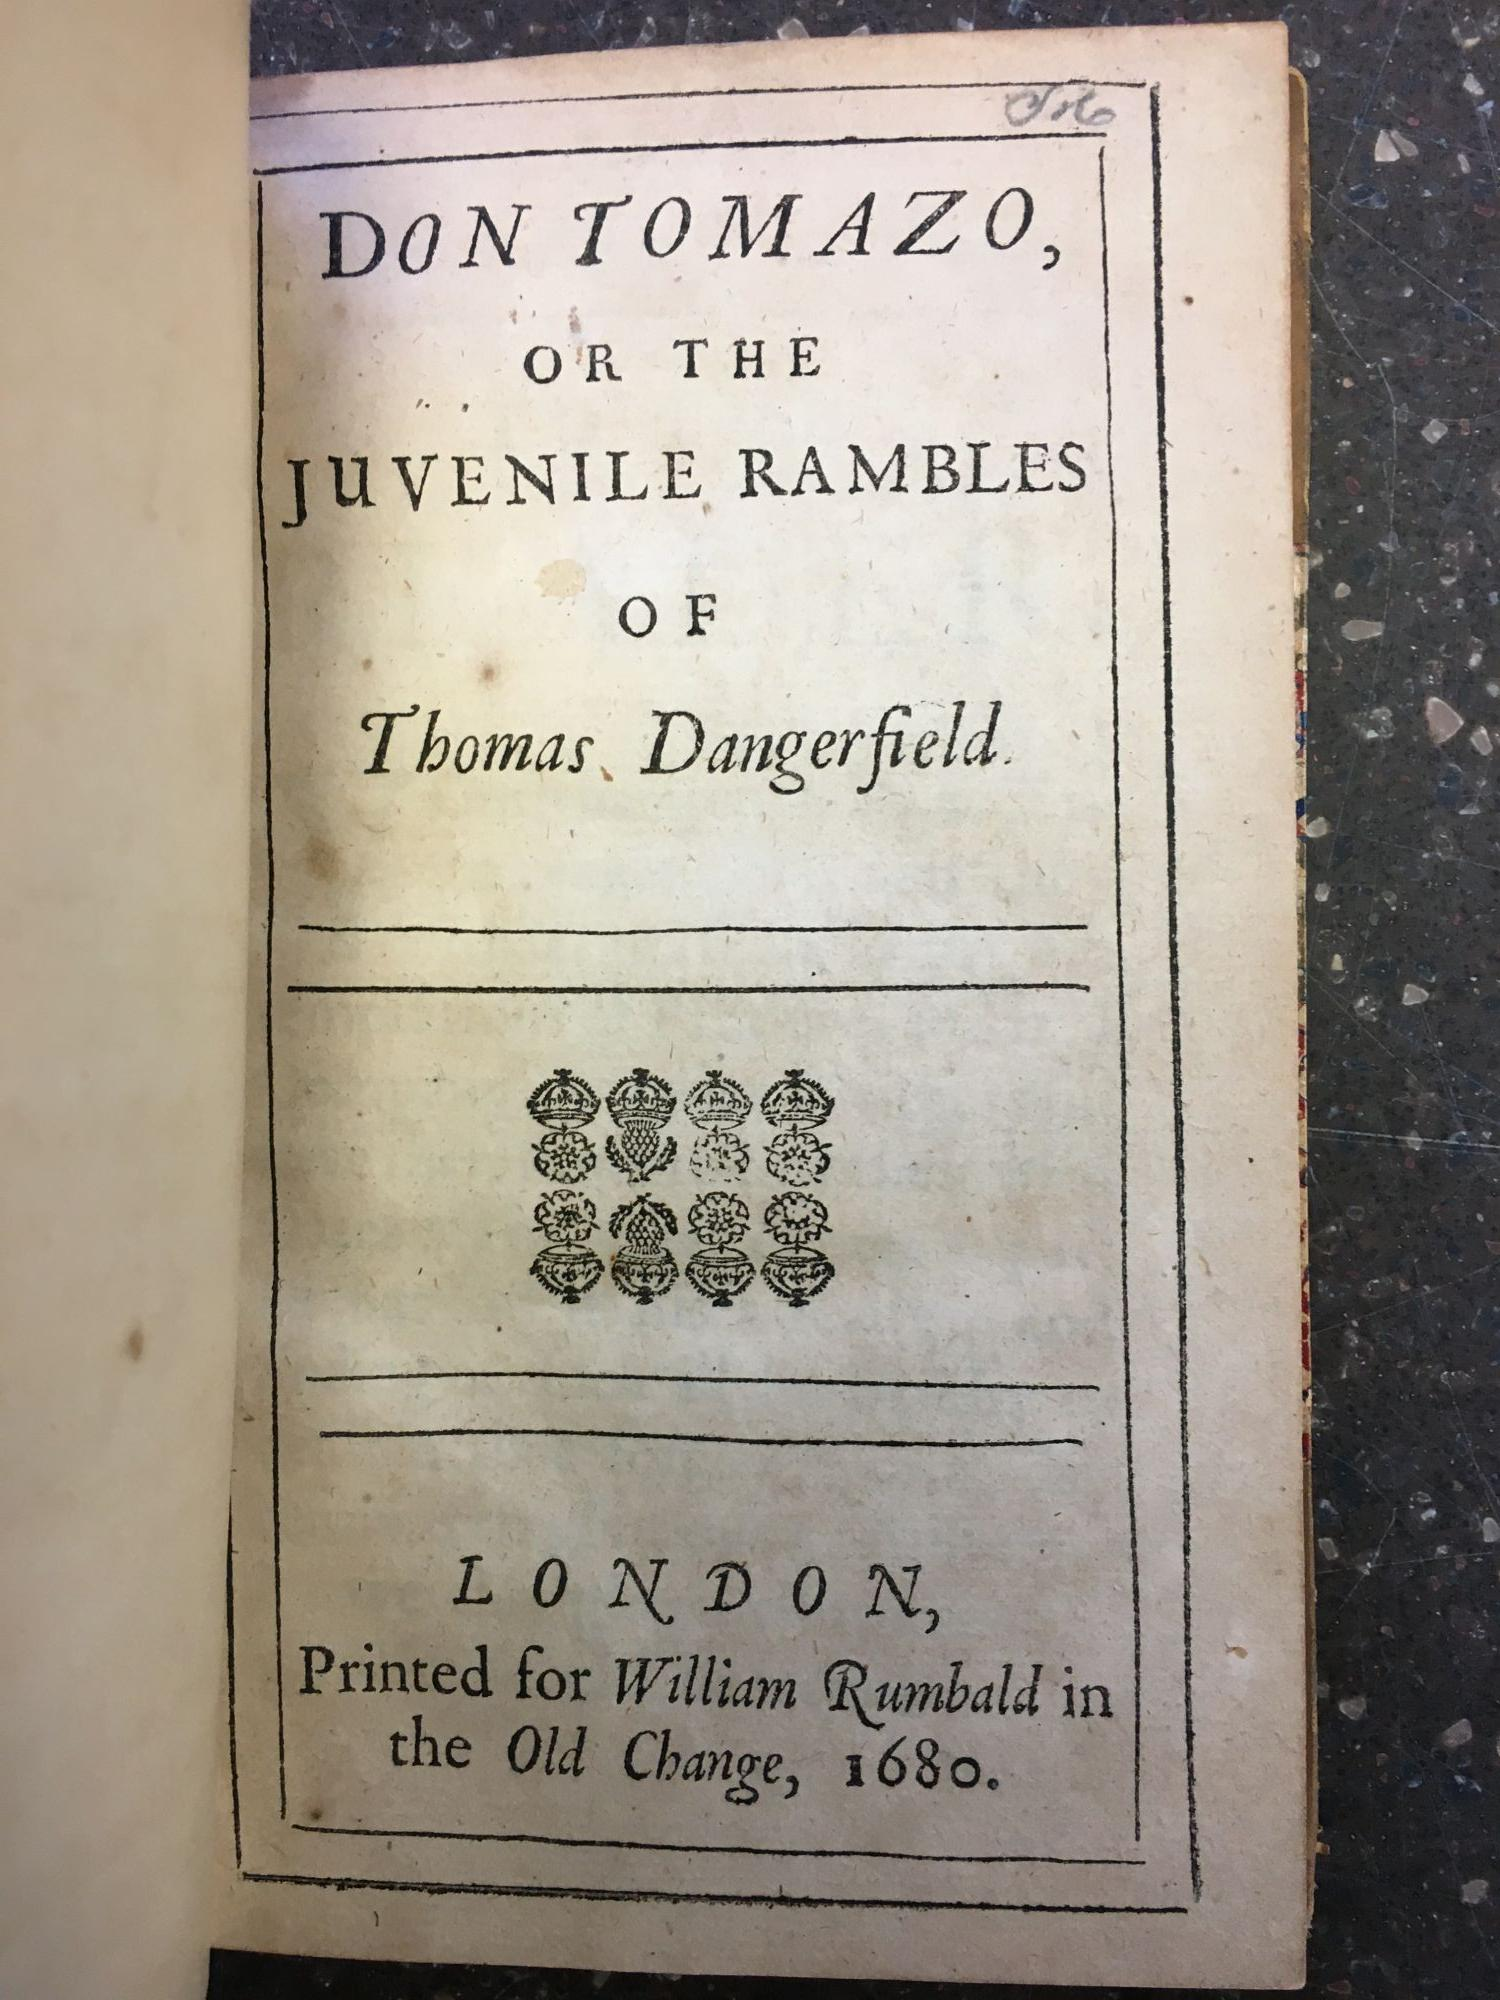 DON TOMAZO, OR THE JUVENILE RAMBLES OF THOMAS DANGERFIELD. Thomas Dangerfield.